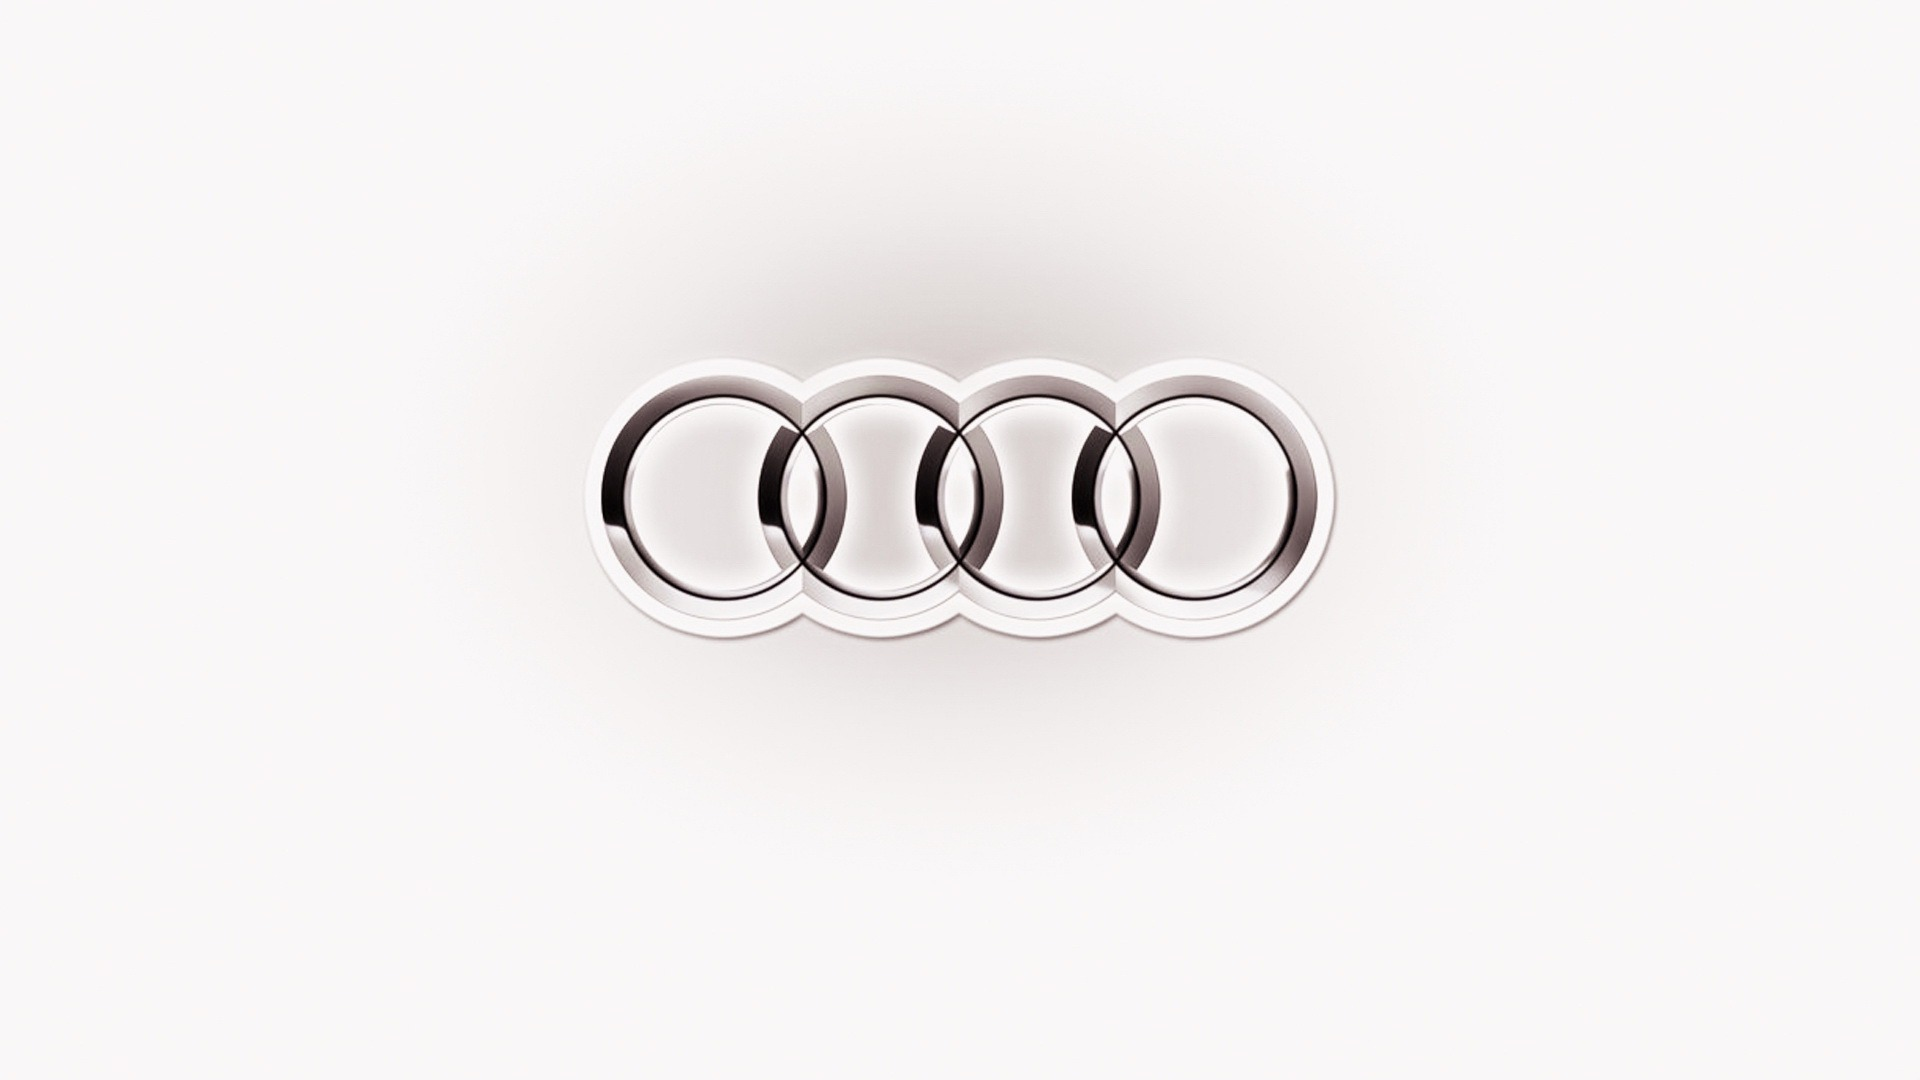 audi logo widescreen desktop wallpaper 1072